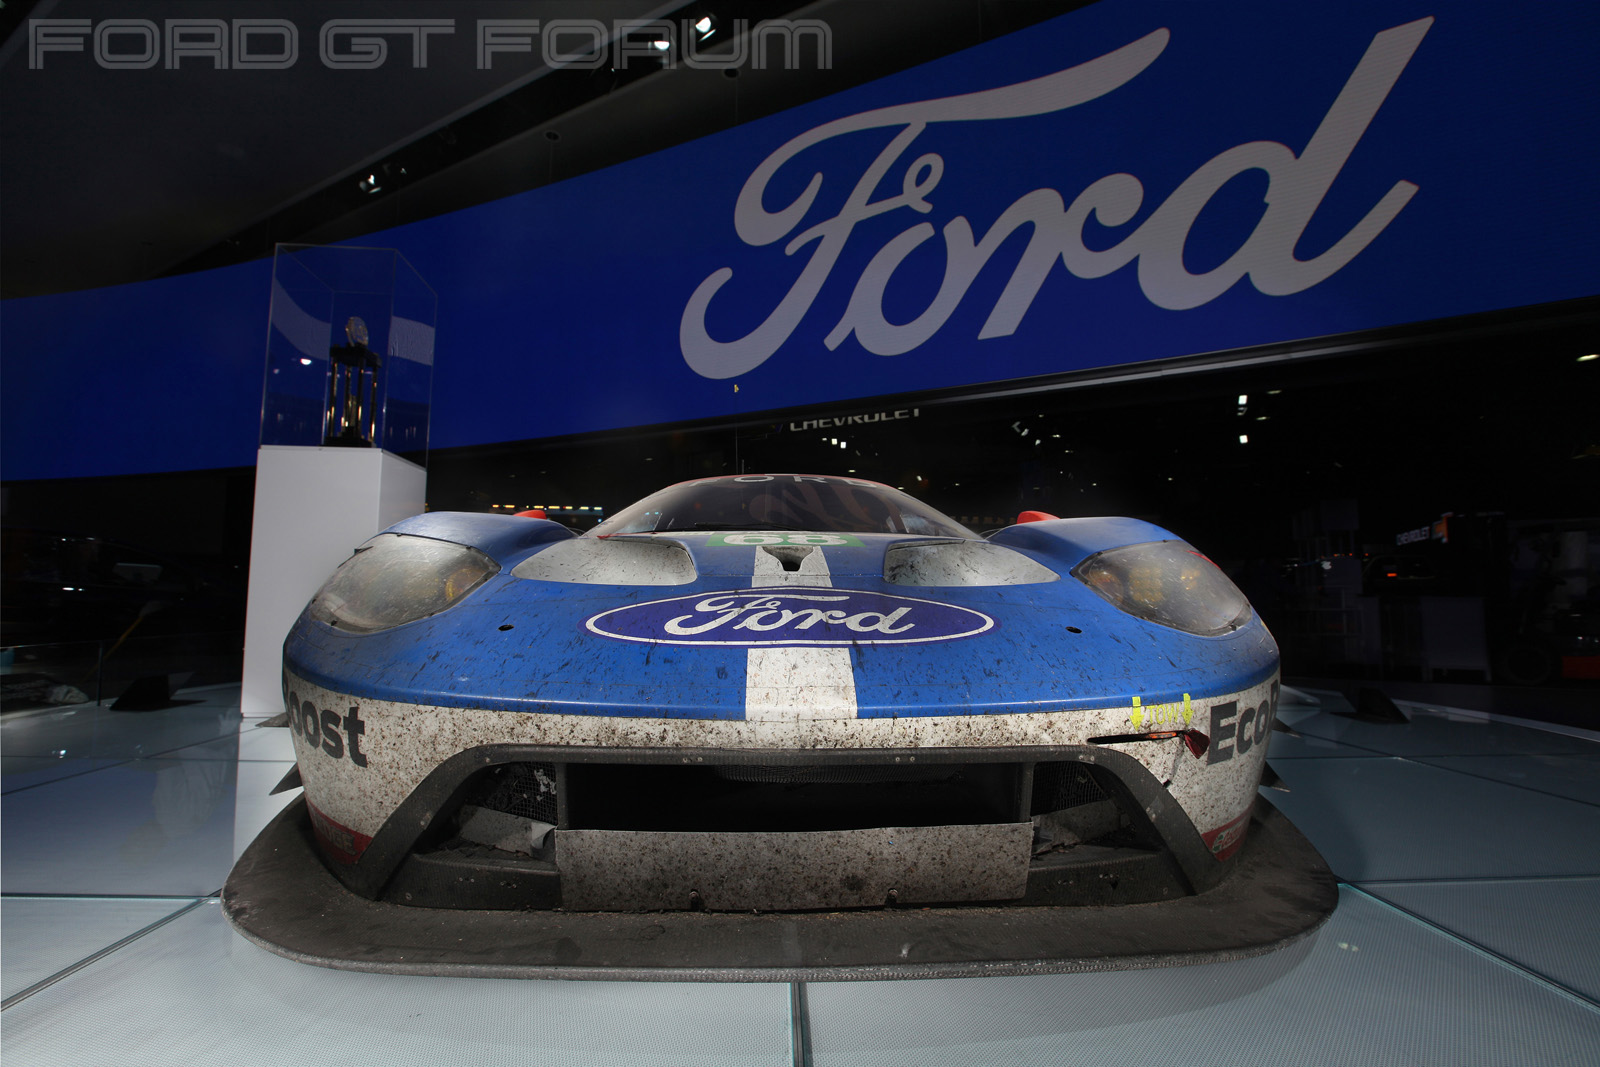 Ford-GT-LM-GTE-Autoshow-3000-Lighting-1